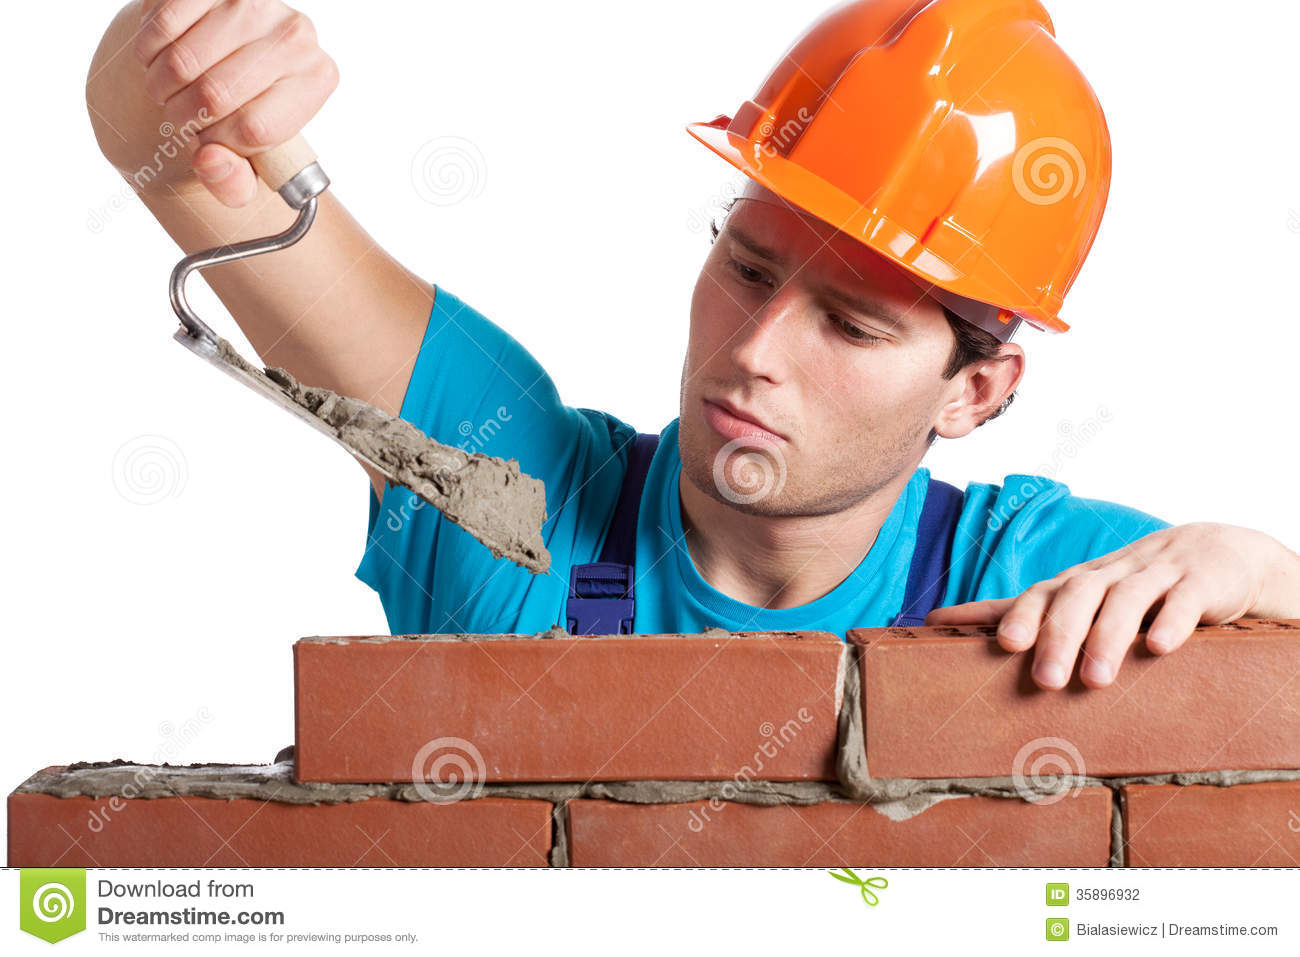 Free Home Plans Constructor With Putty Knife Building Wall Stock Photo